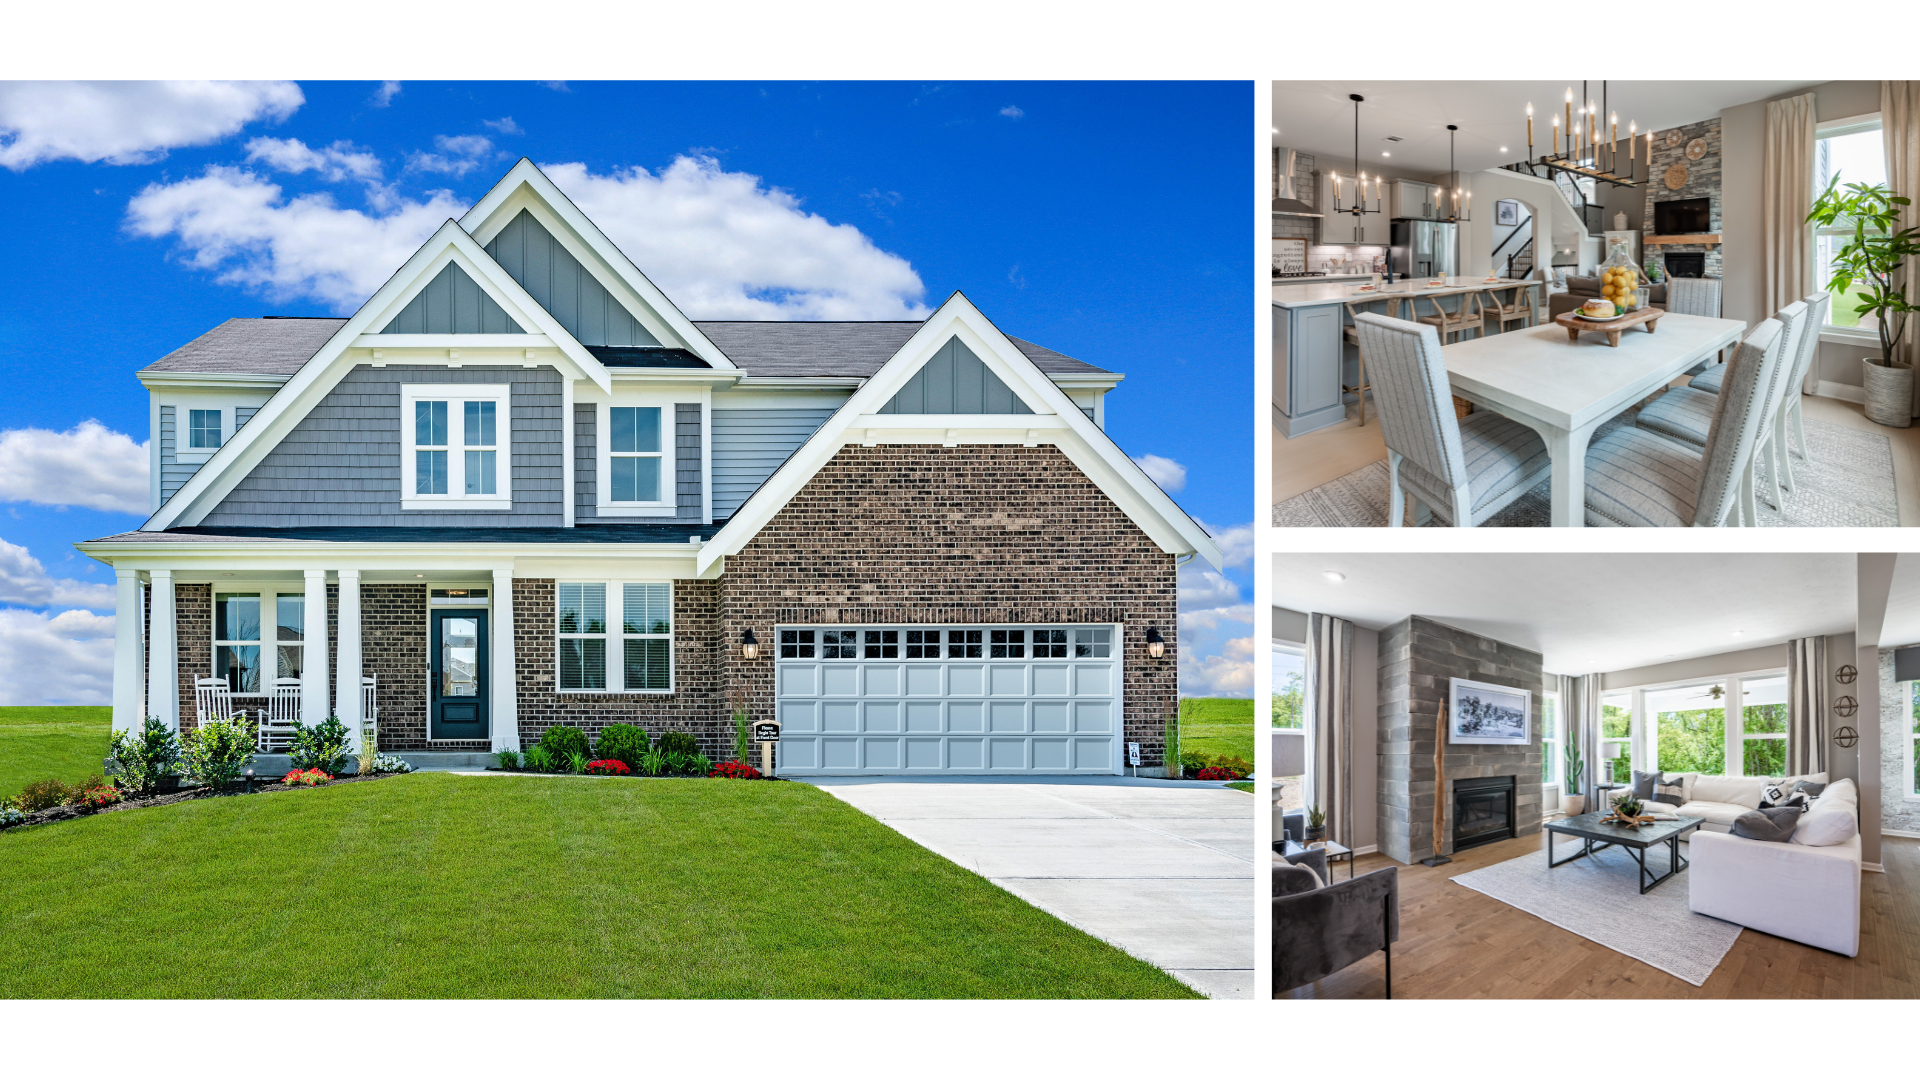 Grandin Exterior Located At The Greens At Streets Of Caledonia Featuring An Open-Concept Kitchen And Family Room With Hard Wood Flooring And Expansive Island Kitchen